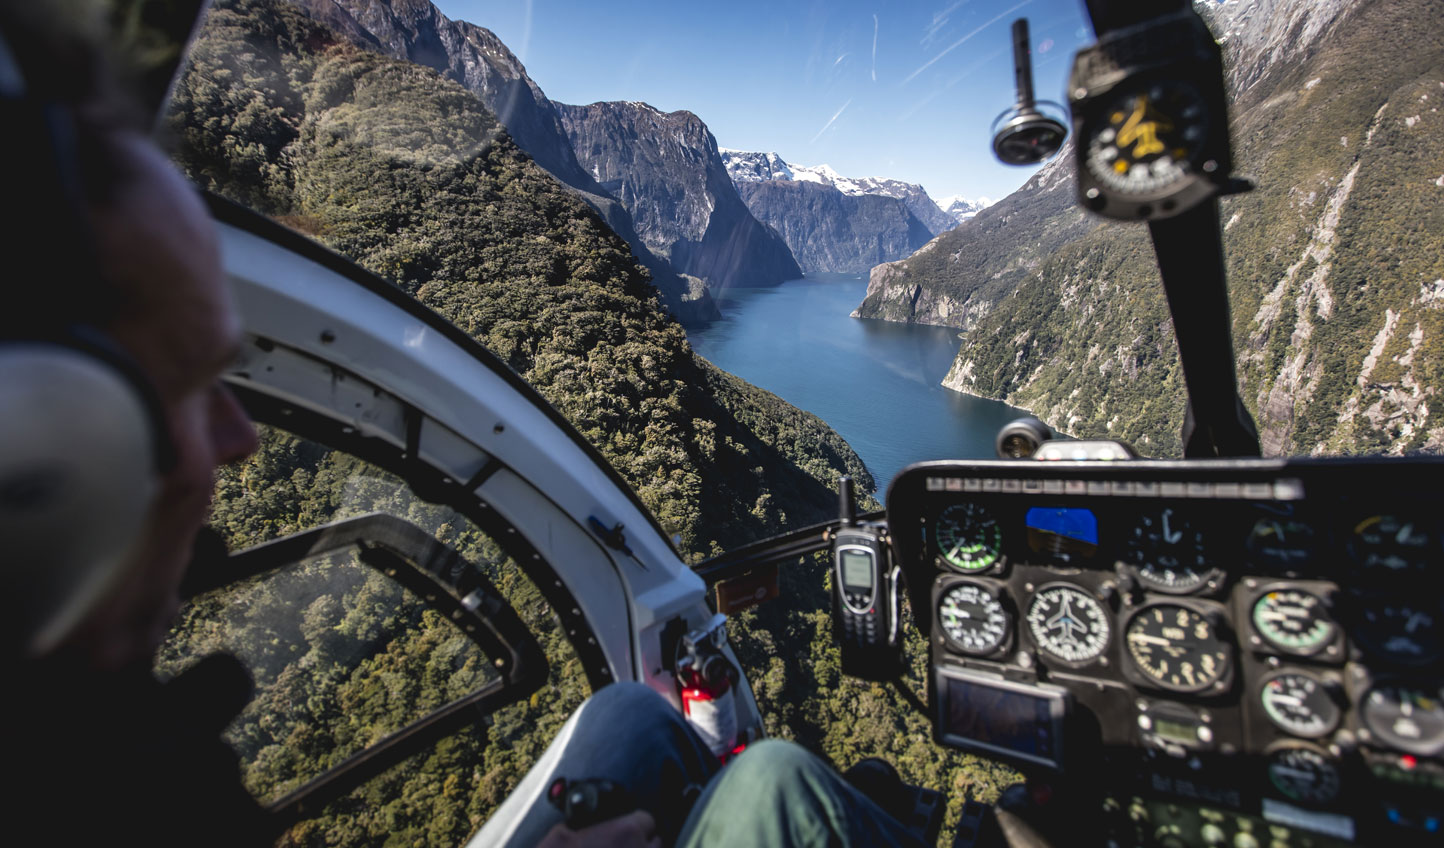 Aerial Milford Sound Views - Image by Miles Holden